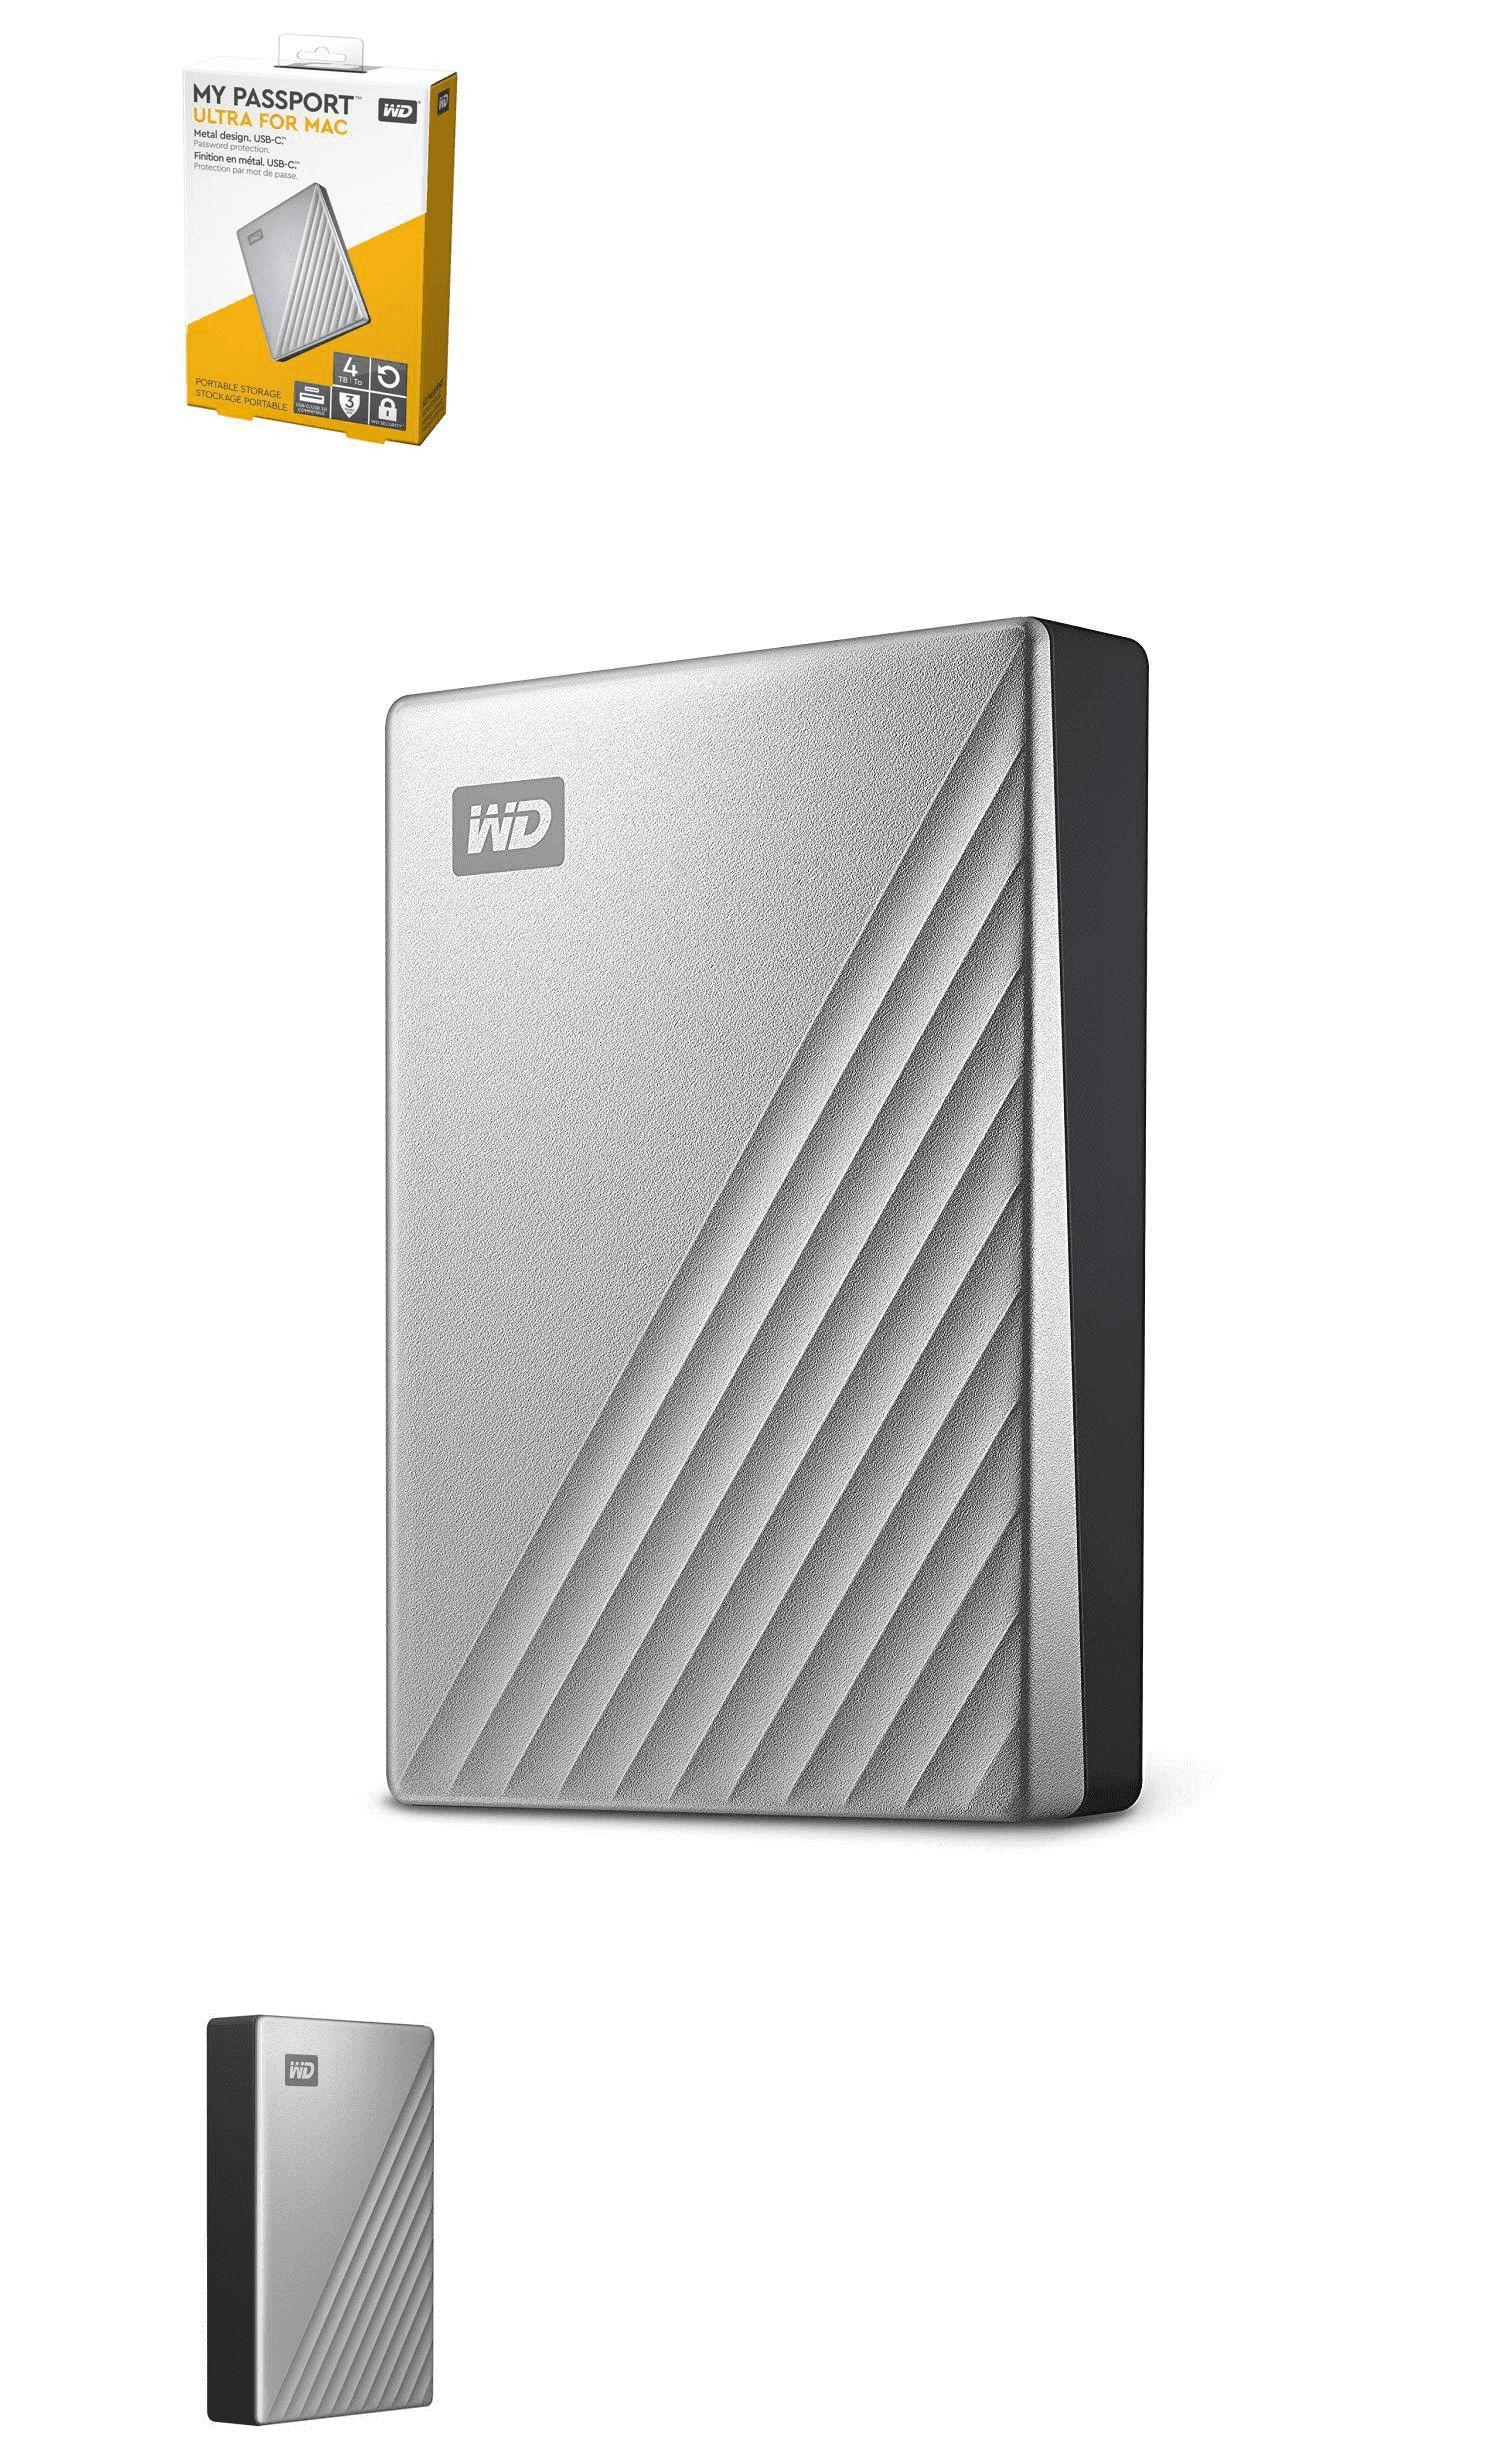 Other Hard Drives 175670 New Wd My Passport Ultra For Mac 4tb External Usb 3 Type C Portable Hard Drive Buy It No Portable Hard Drives Hard Drive Driving